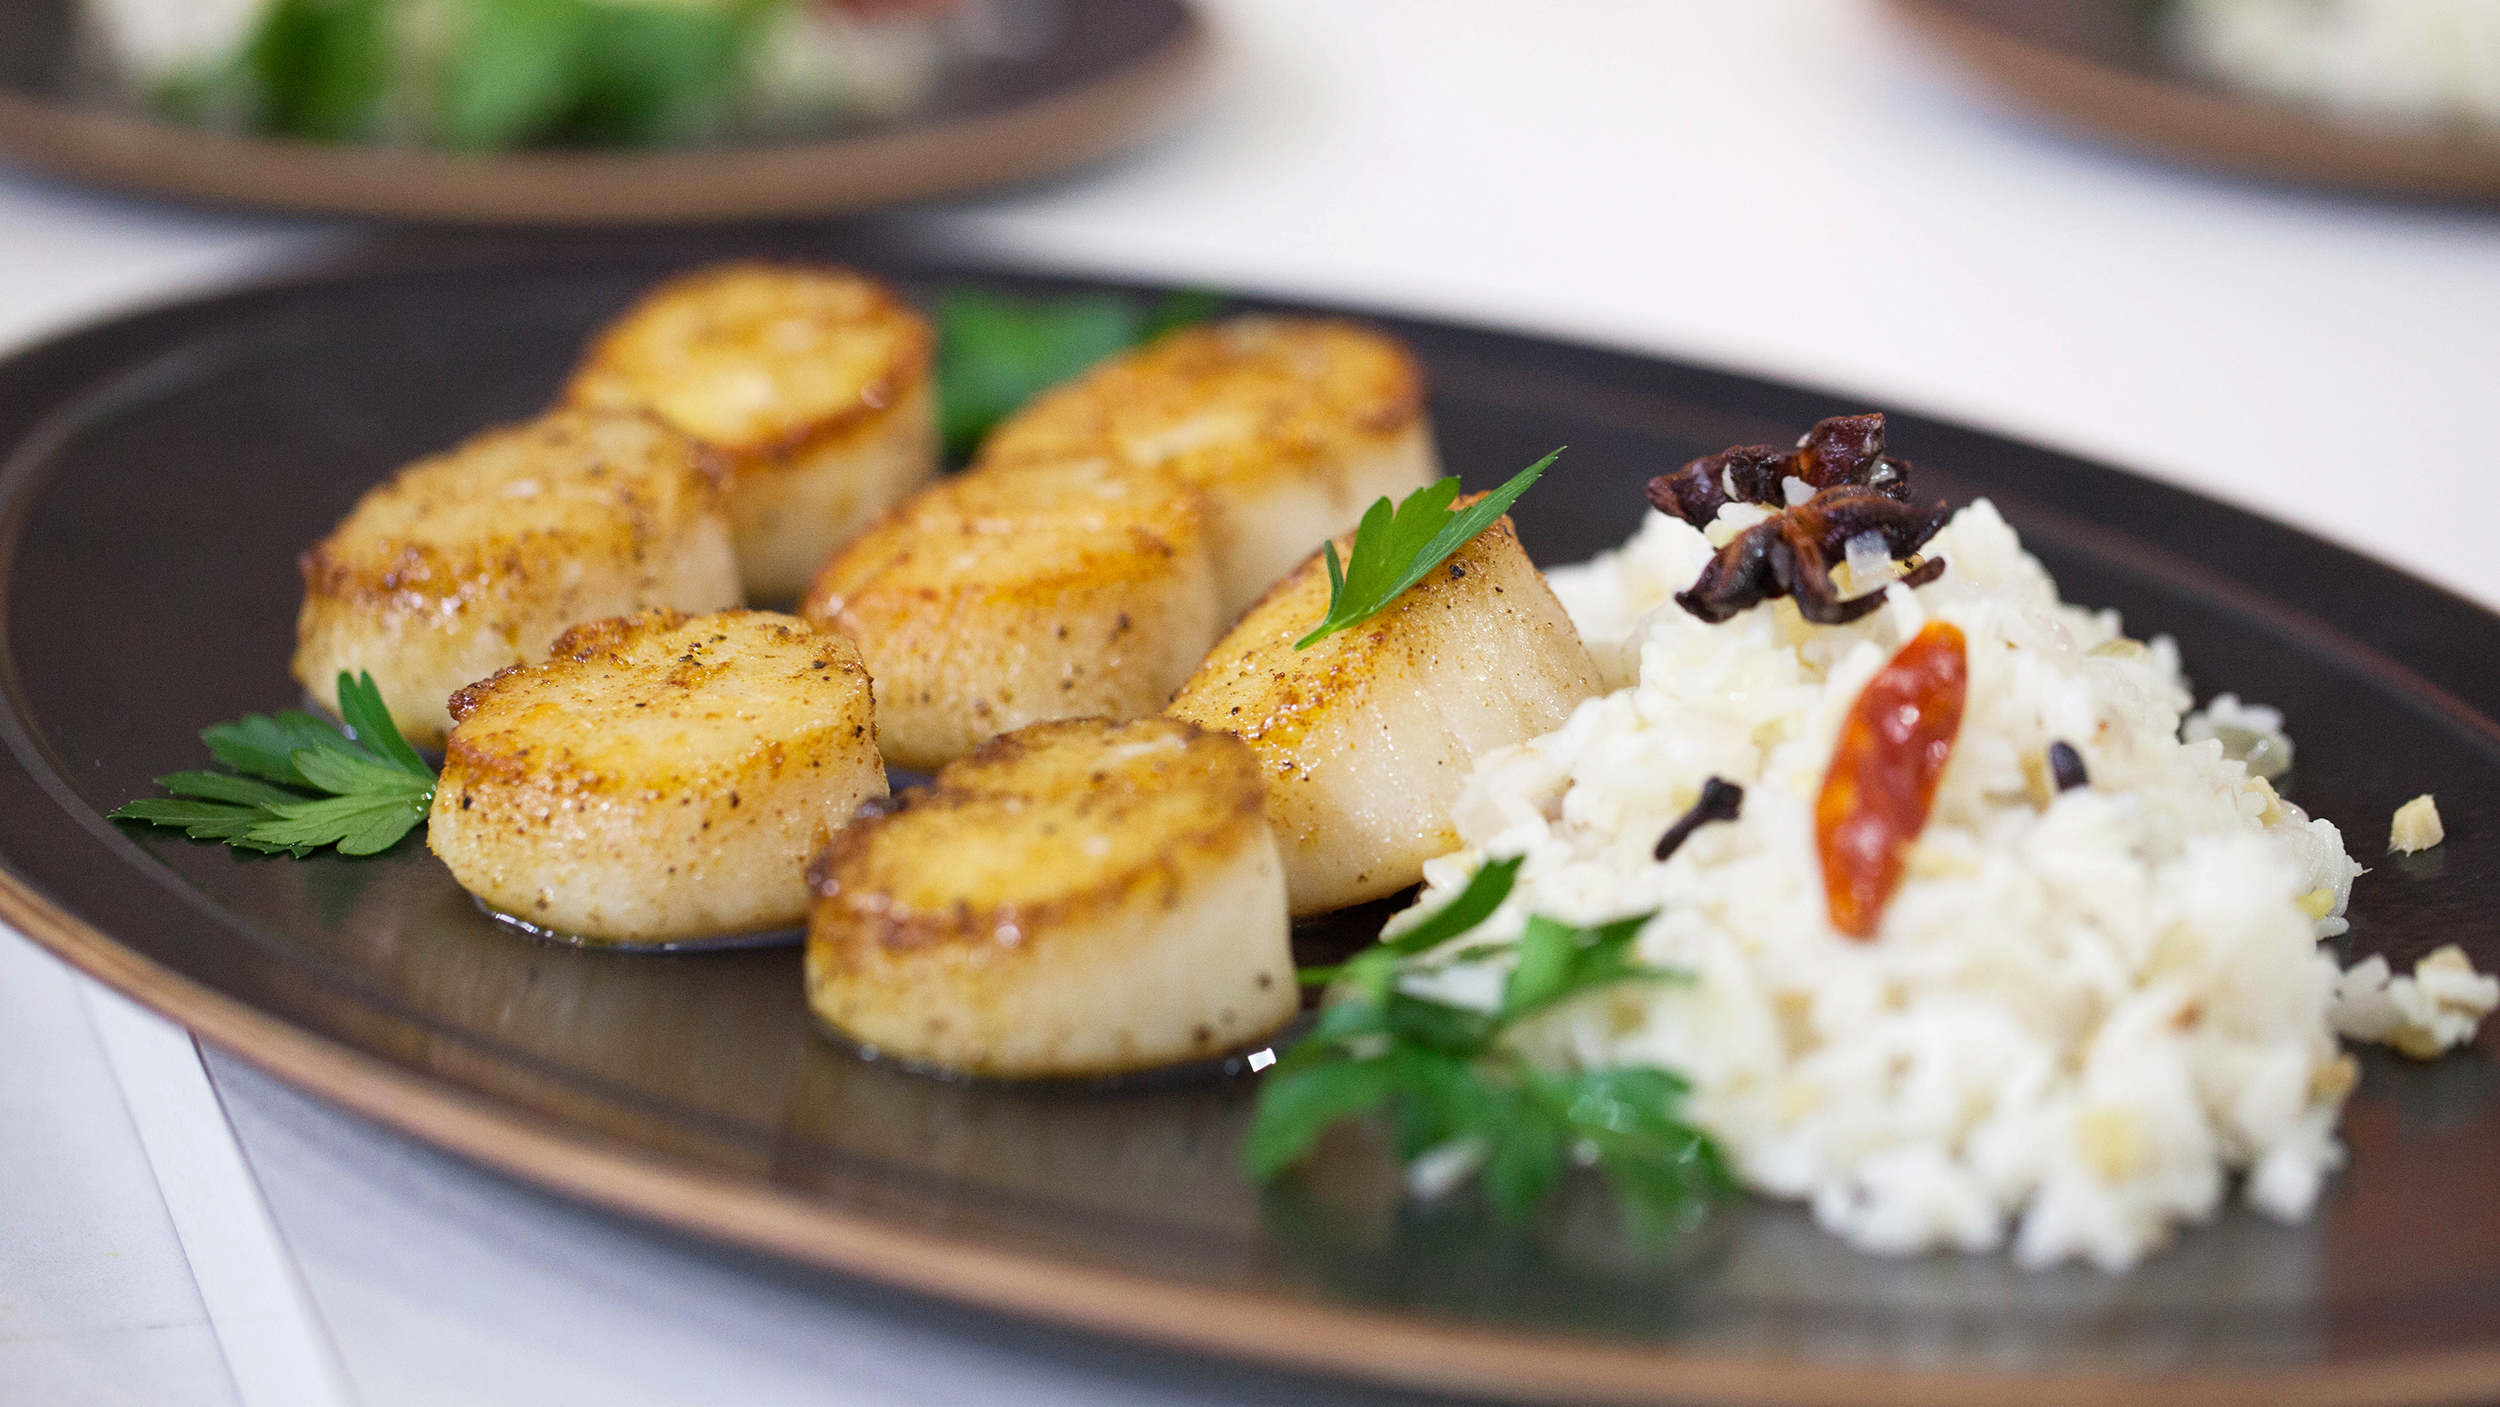 Pan-Roasted Scallops with Spiced Butter - TODAY.com